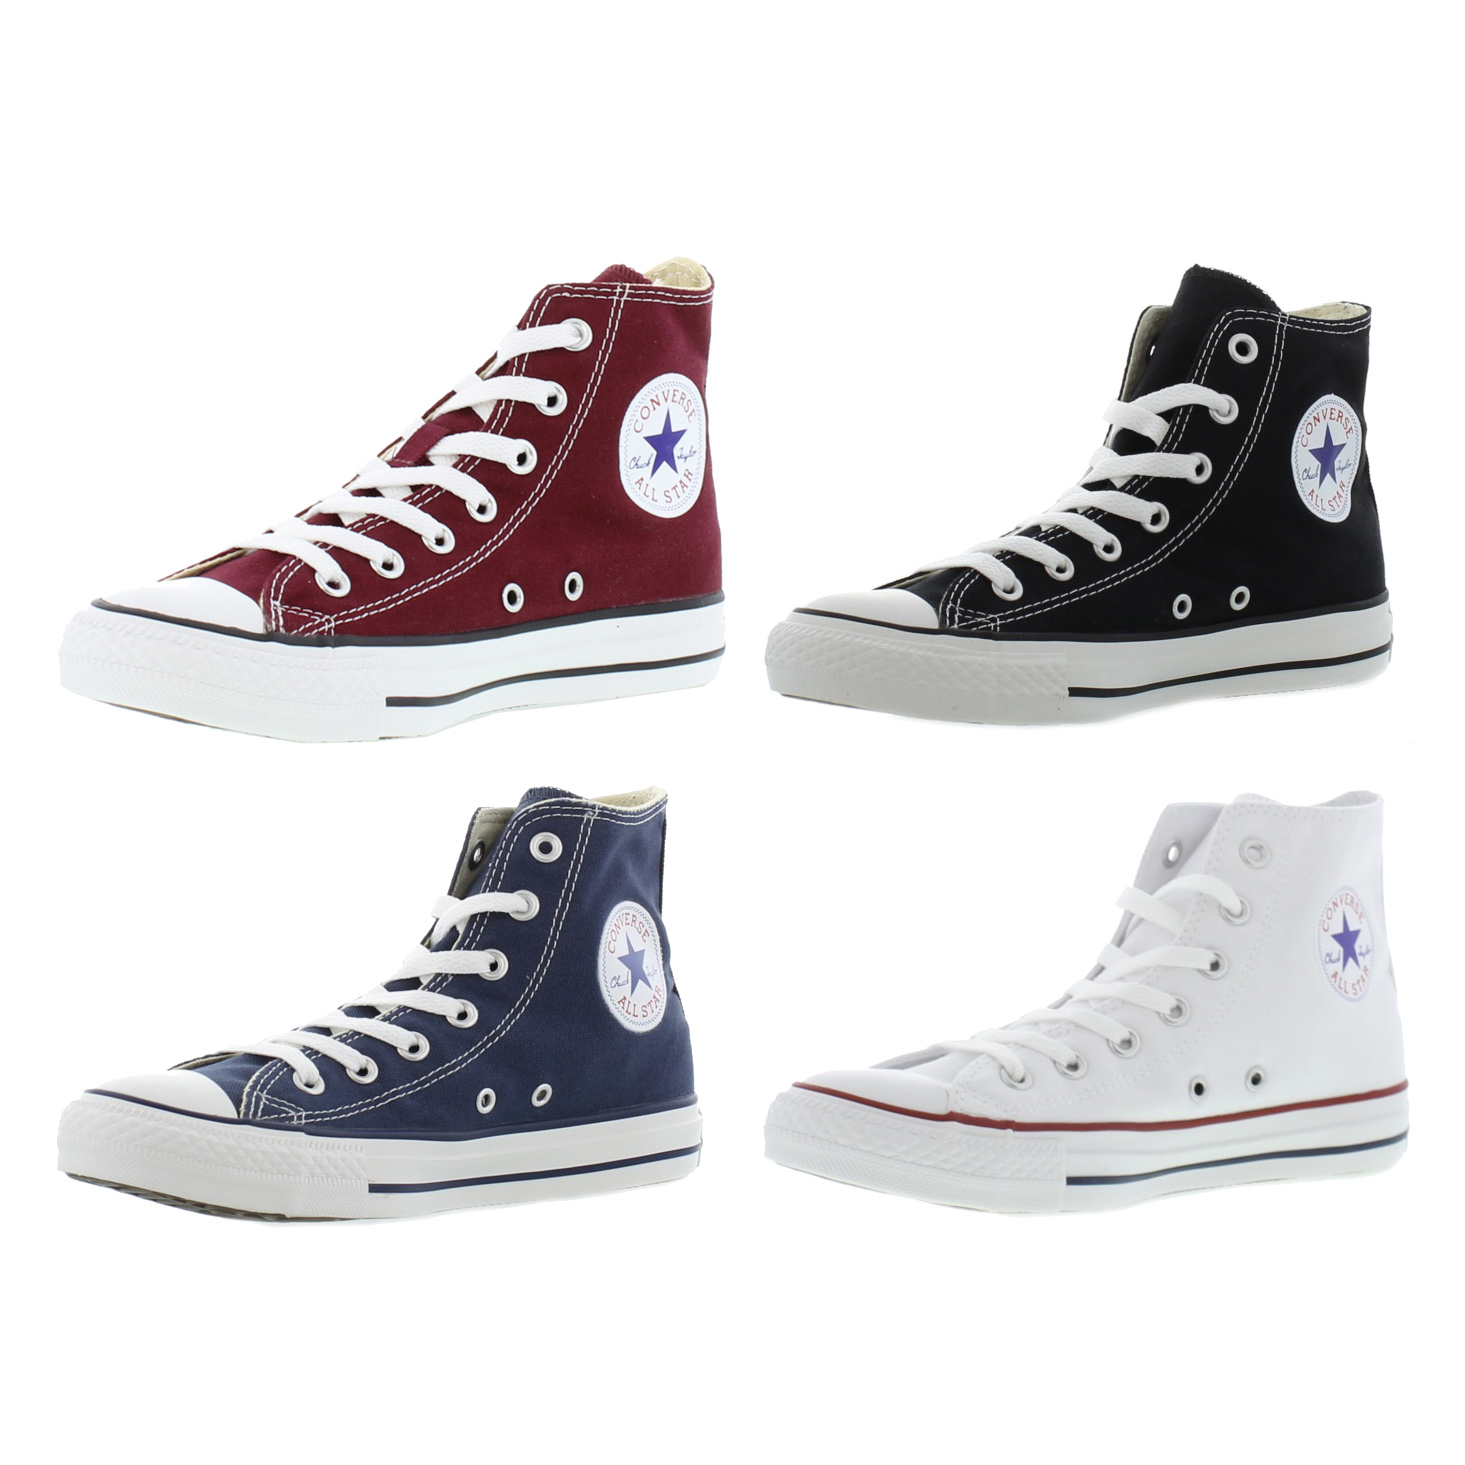 7f8481b67a14 Details about Converse All Star Hi Mens Womens Ladies Classic Hi Top Boots  Trainers Size 4-13